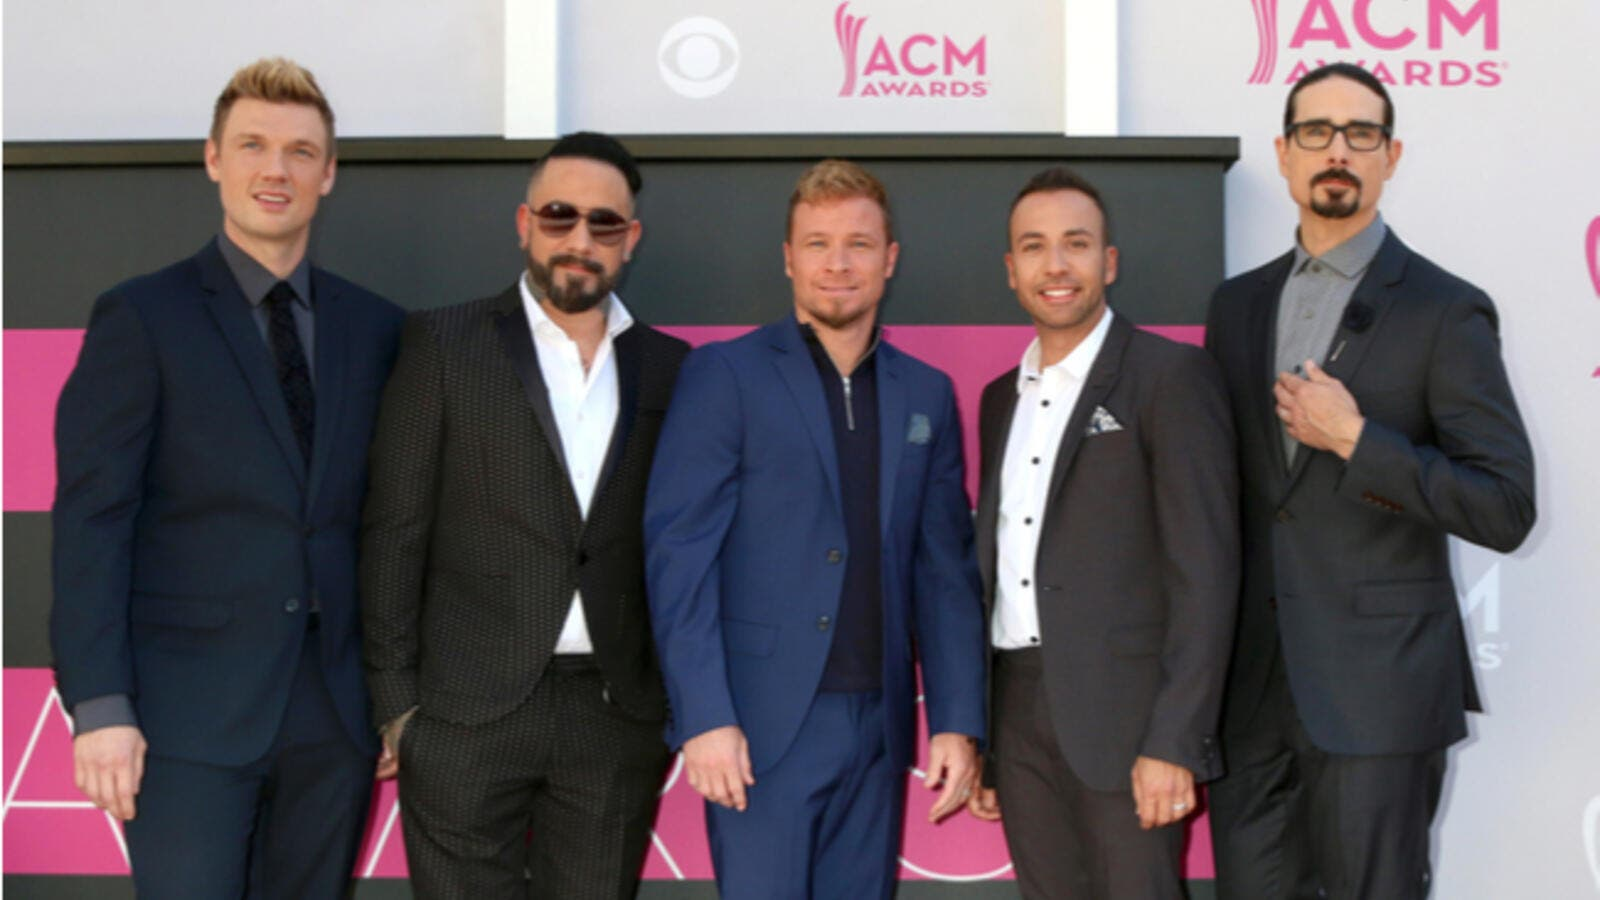 The Backstreet Boys performed at the sold-out Blended music festival at Dubai Media City Amphitheatre (Source: Kathy Hutchins / Shutterstock)